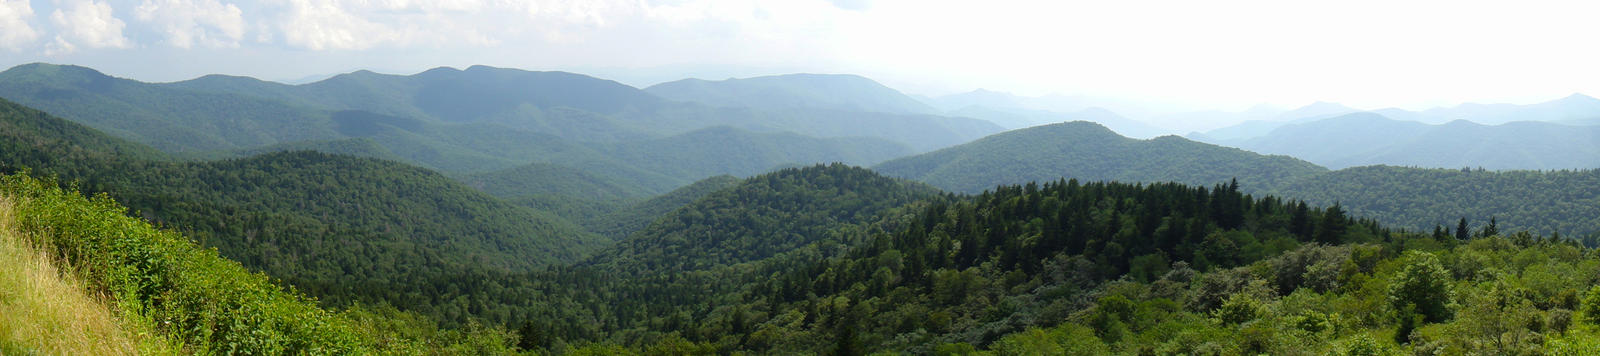 Cowee Mountains